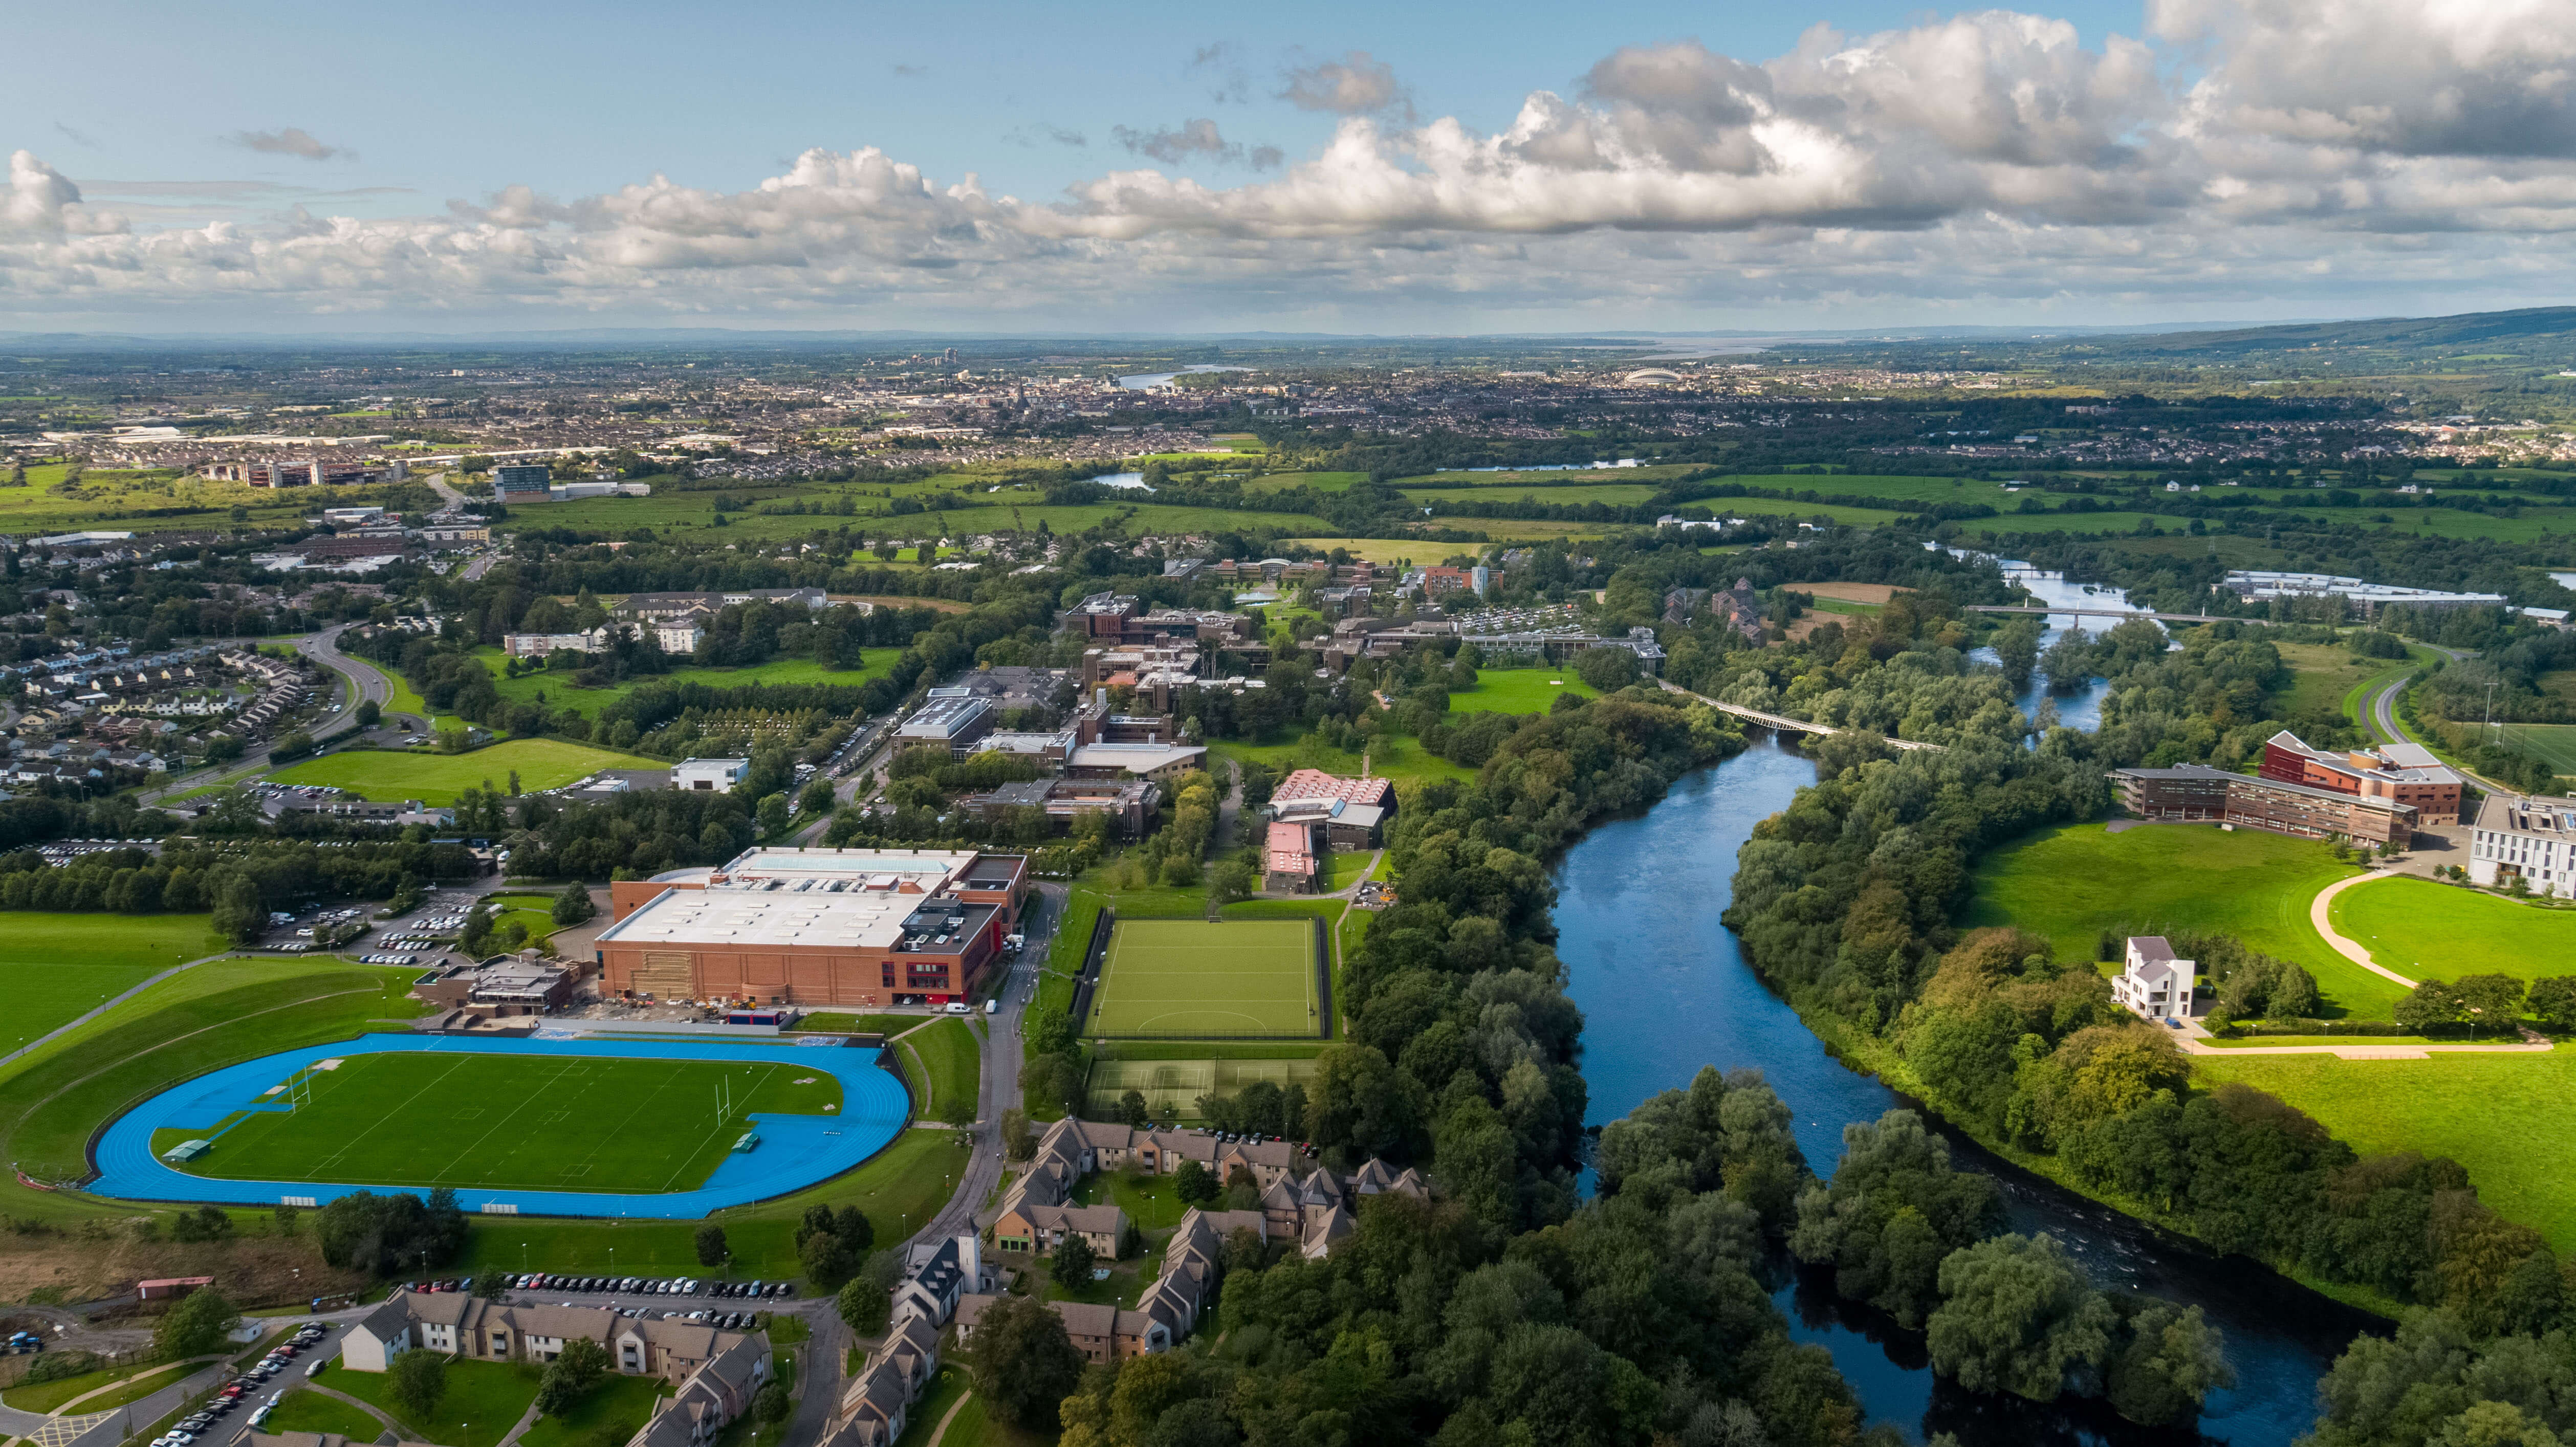 University of Limerick, Faculty of Education & Health Sciences